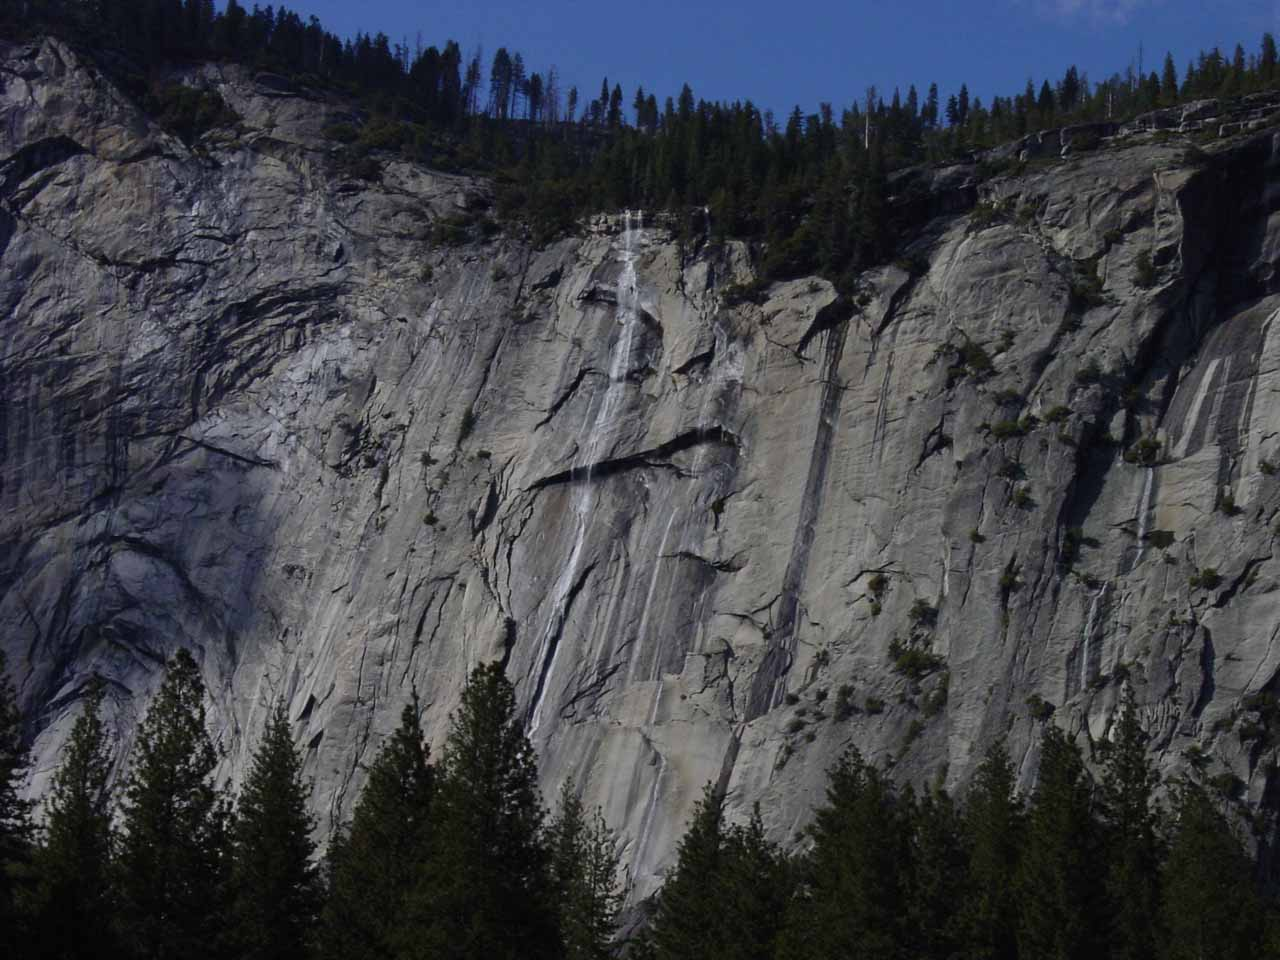 Focused on Royal Arch Cascade from Stoneman Meadow